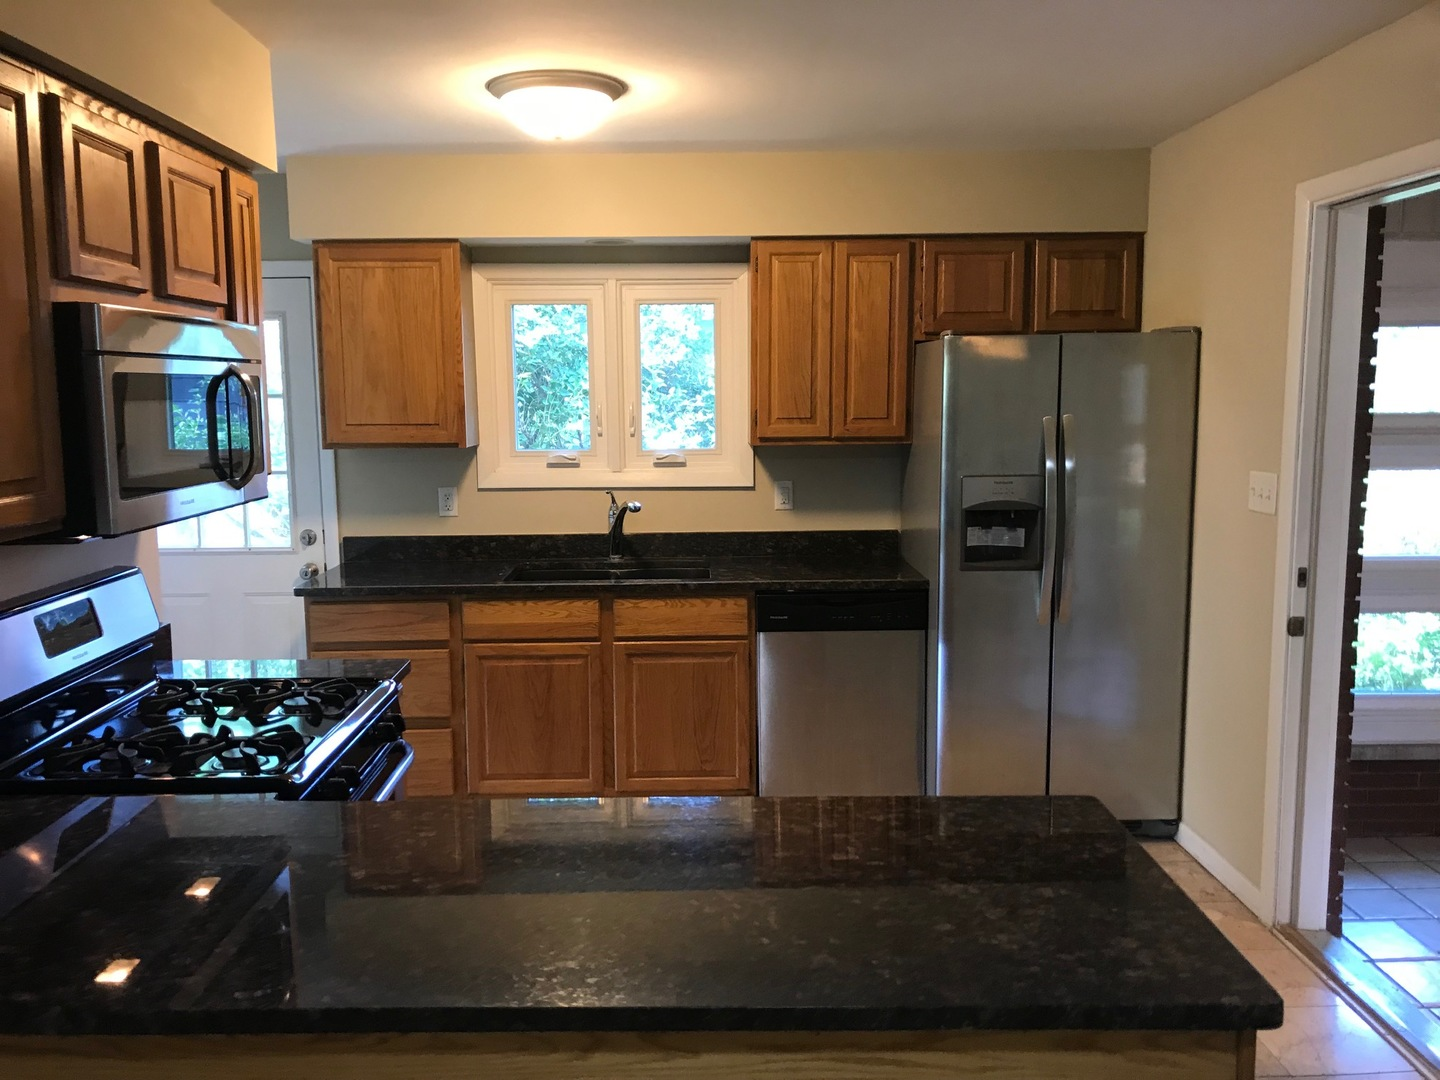 319 South 14th, ST. CHARLES, Illinois, 60174